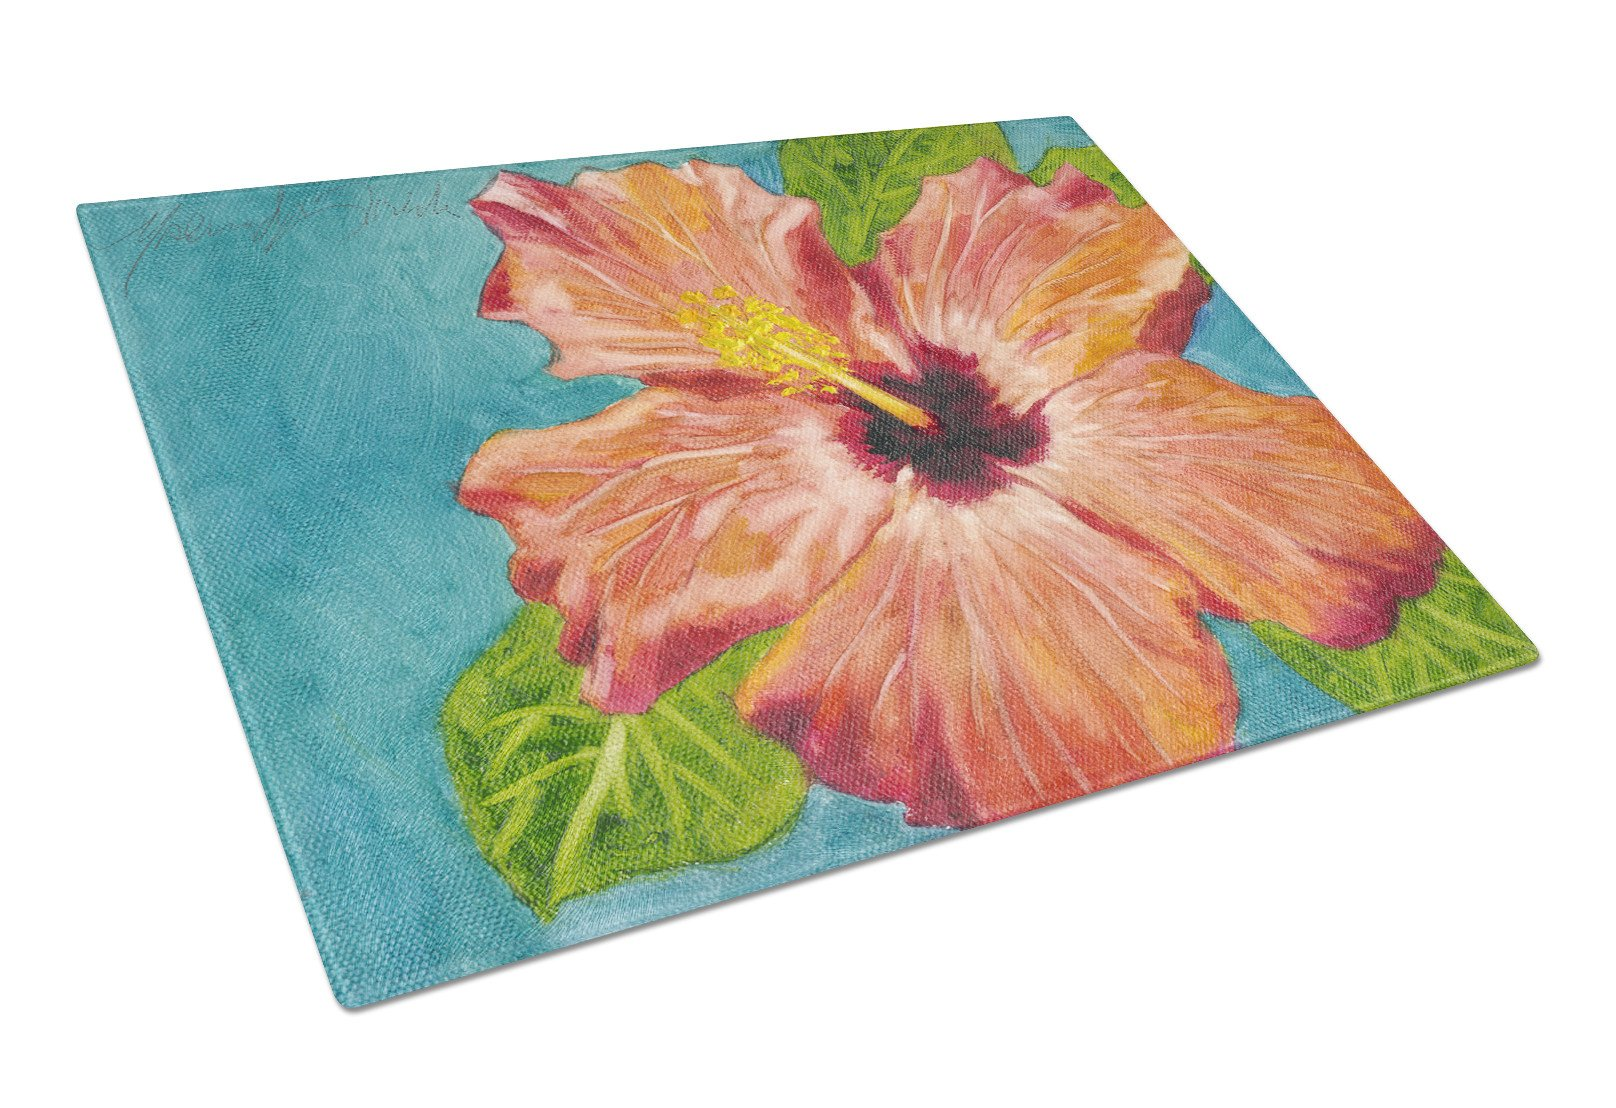 Coral Hibiscus by Malenda Trick Glass Cutting Board Large TMTR0316LCB - the-store.com